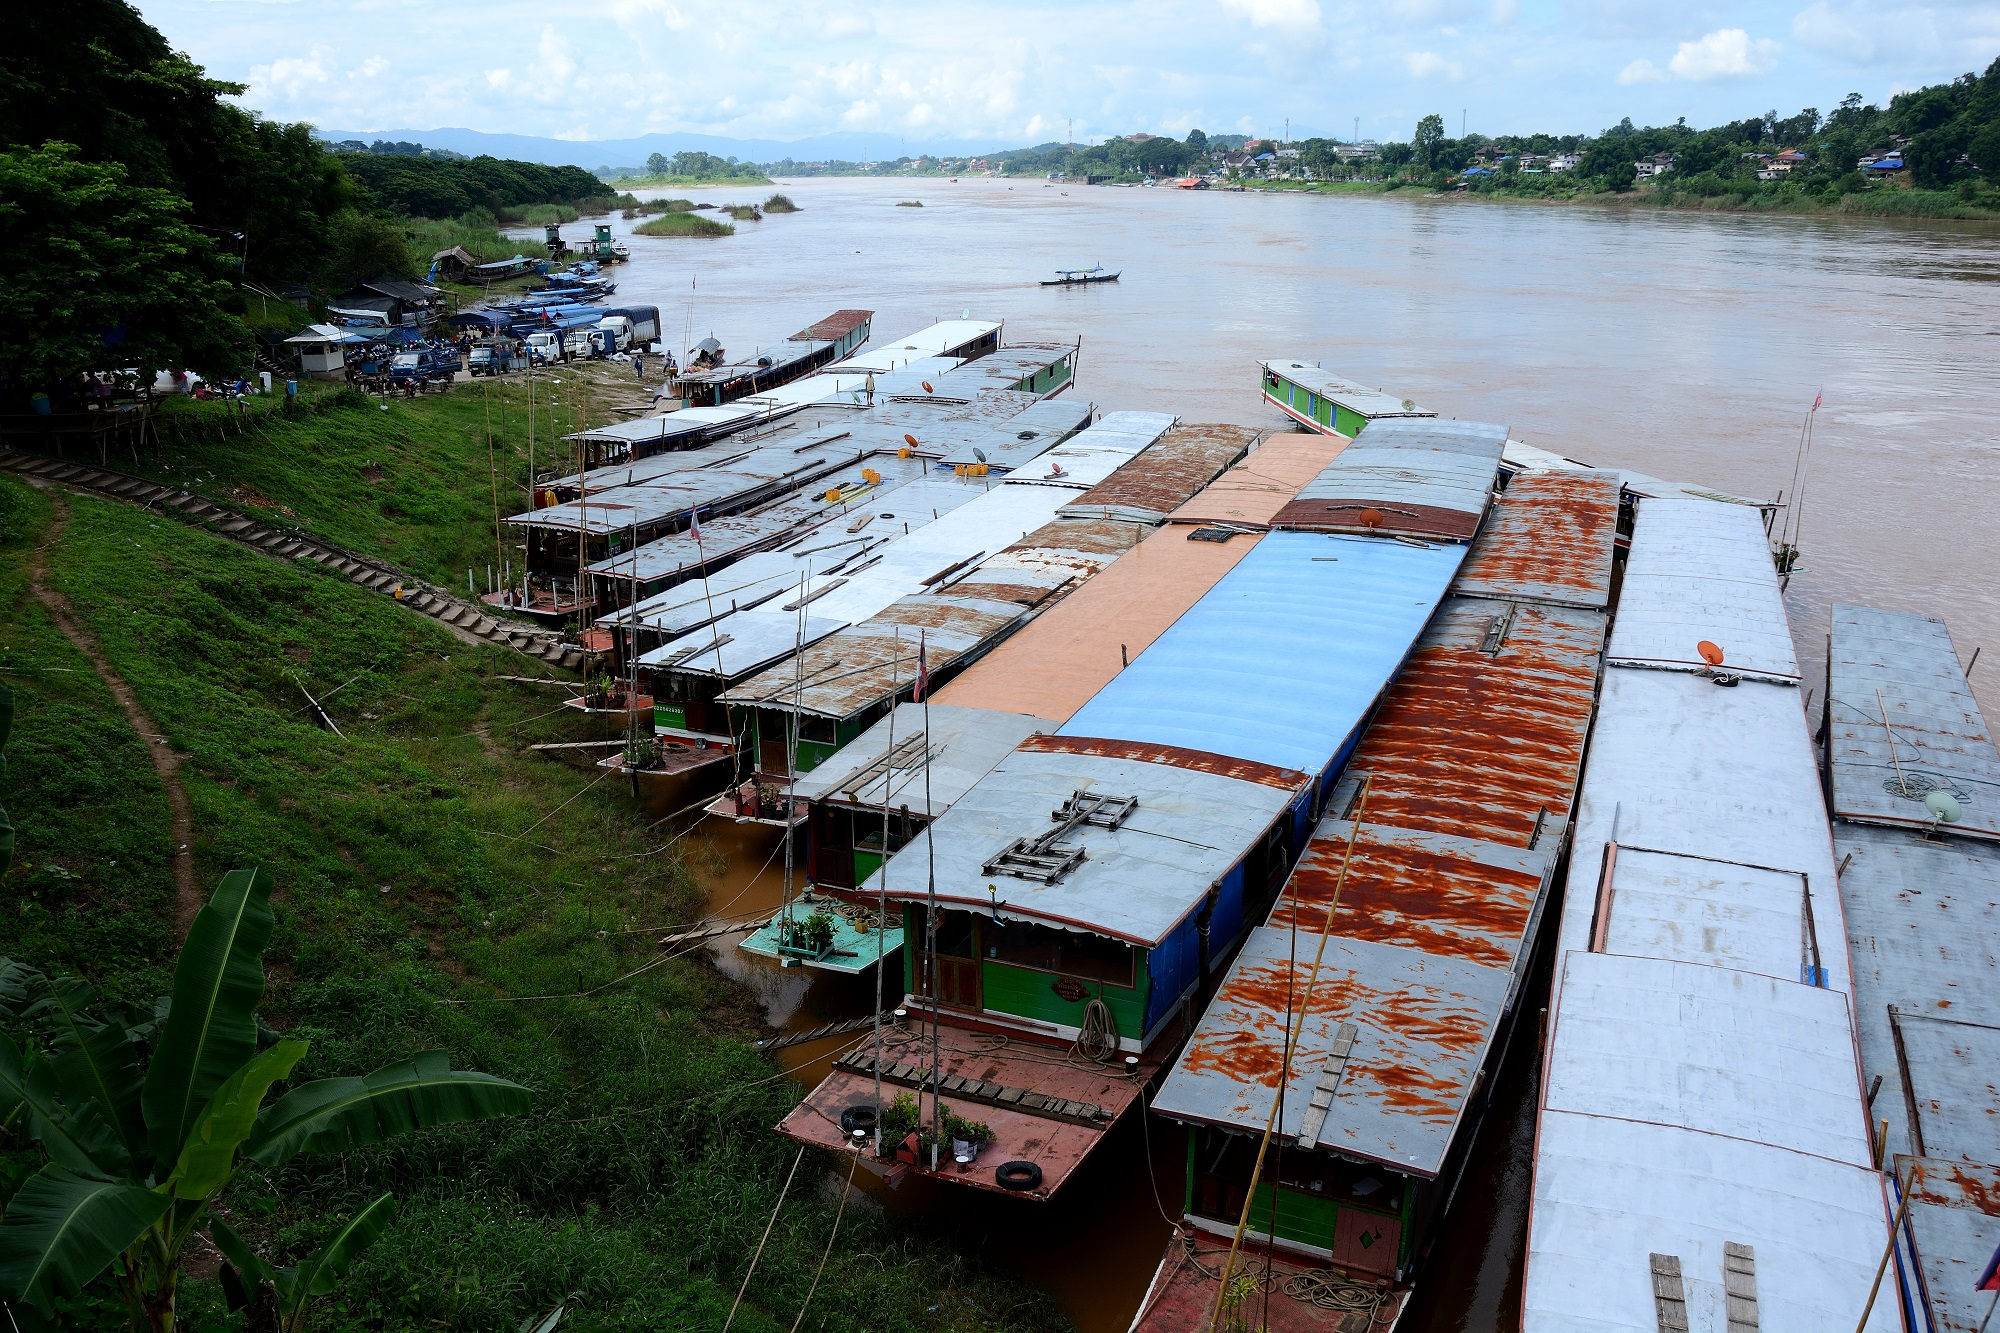 A row of long boats waiting at the pier in Huay Xai, Laos